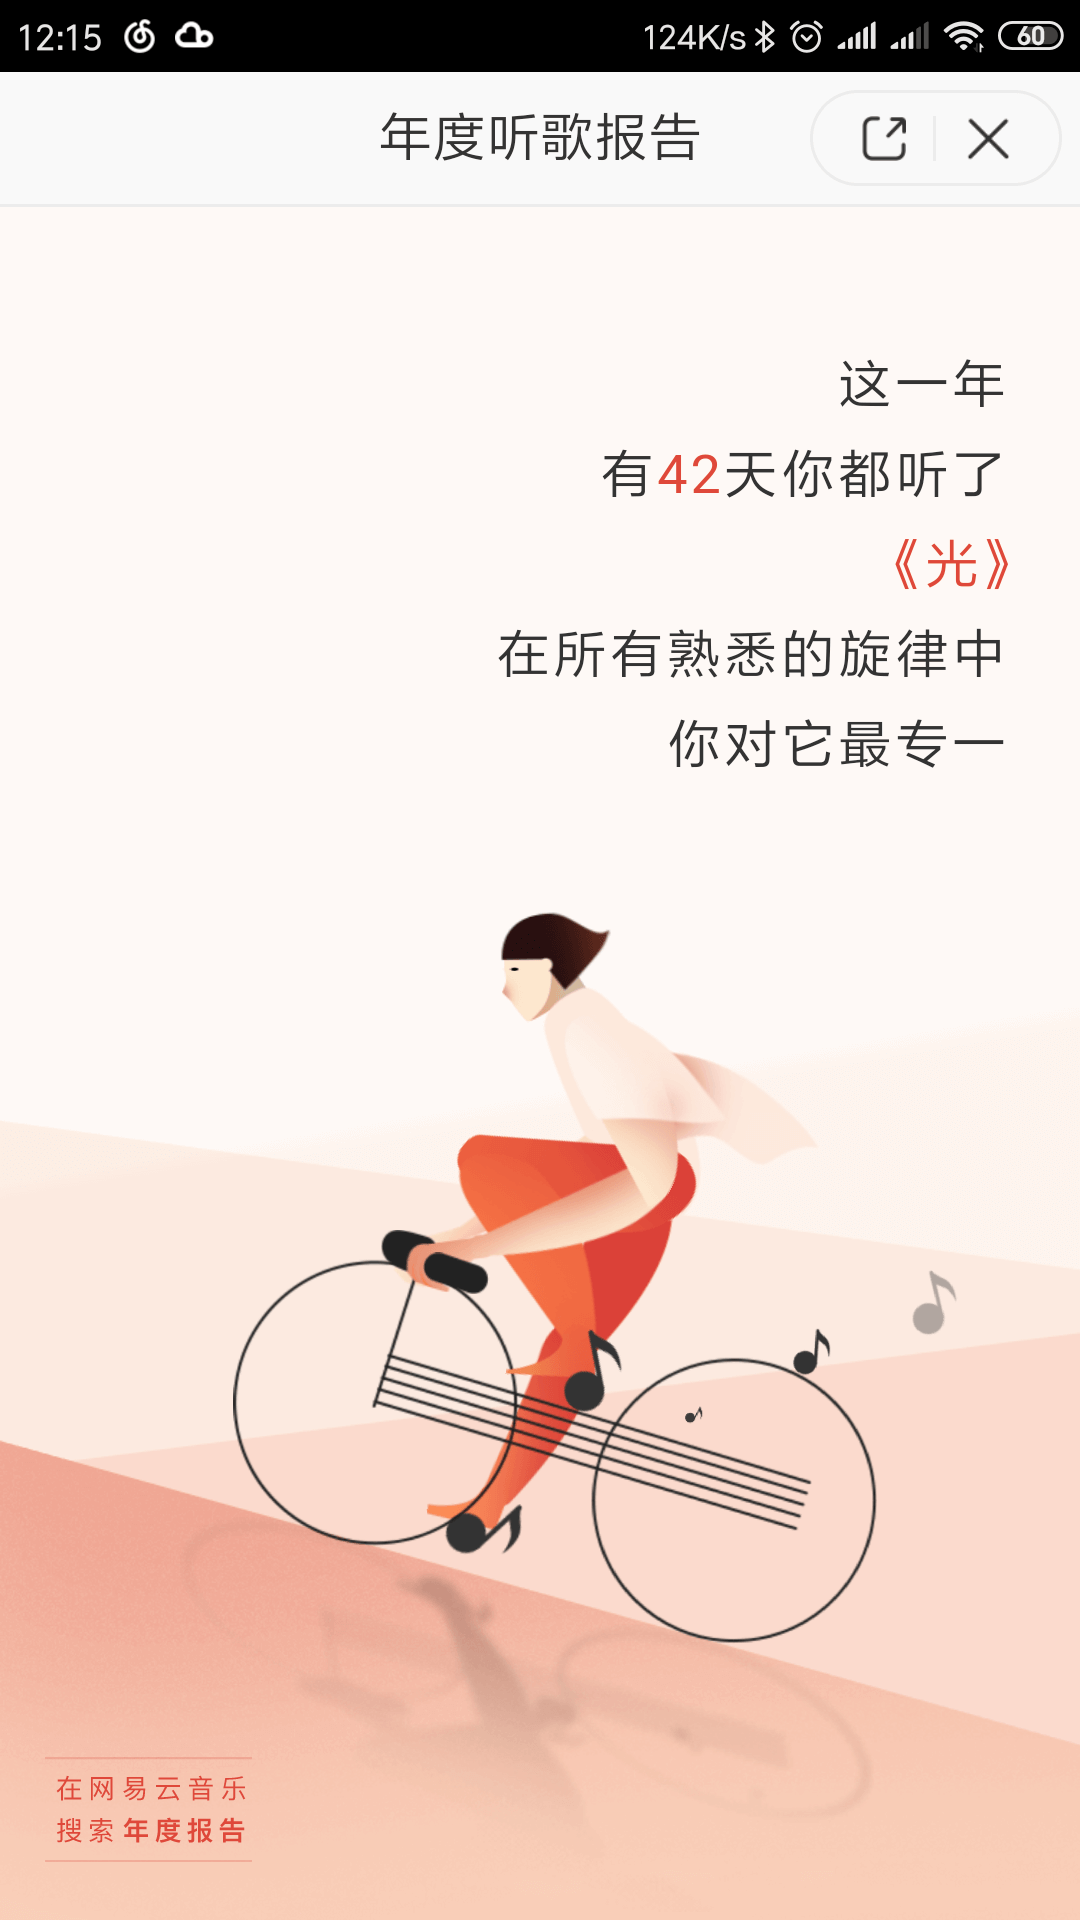 Screenshot_2019-01-04-12-15-43-859_com.netease.cloudmusic.png